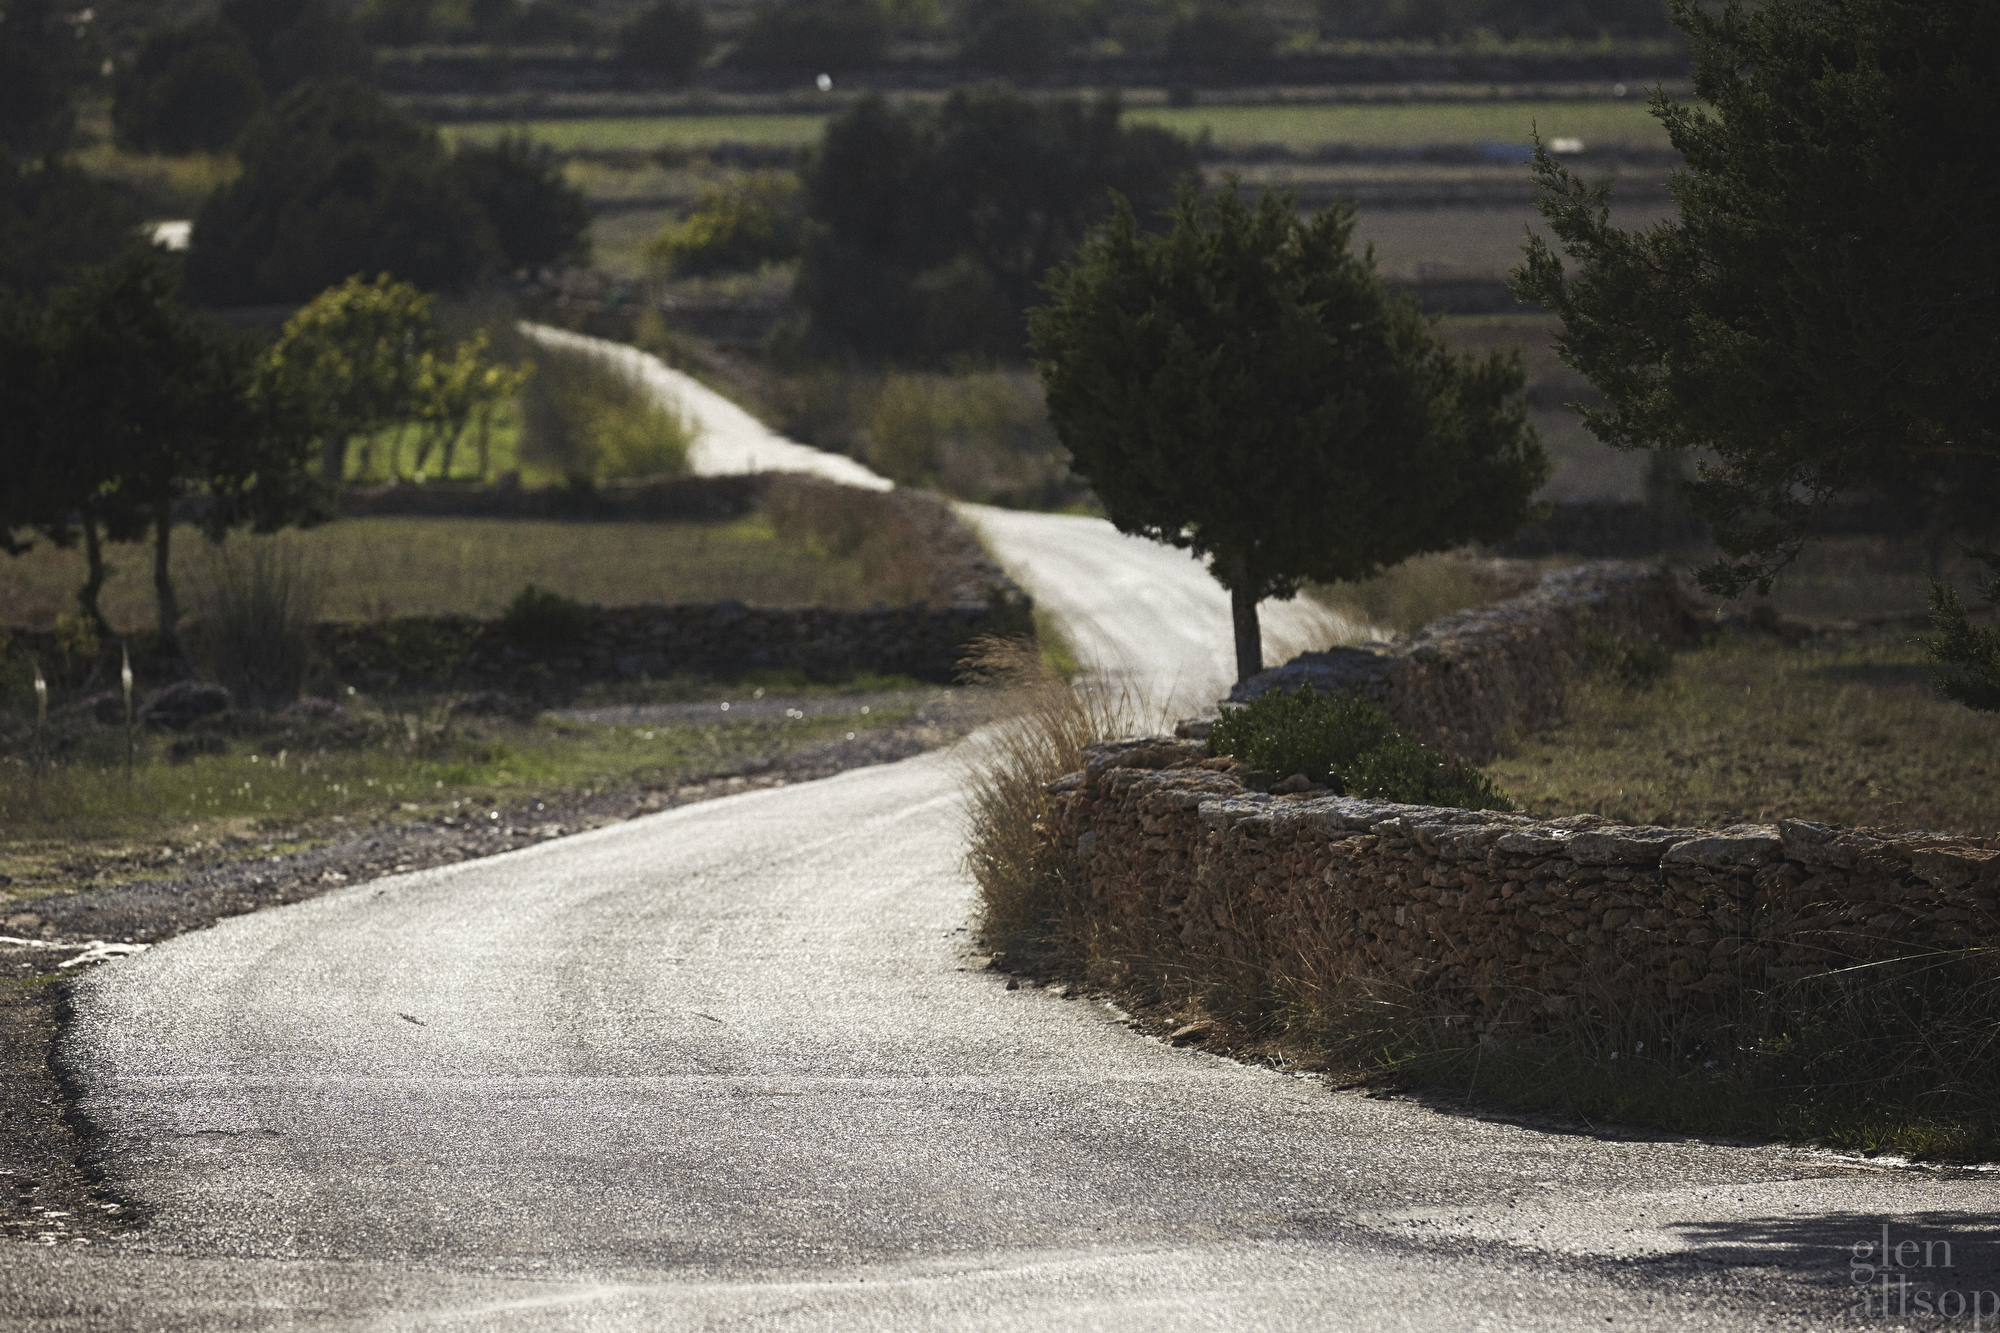 formentera-winding road-fields